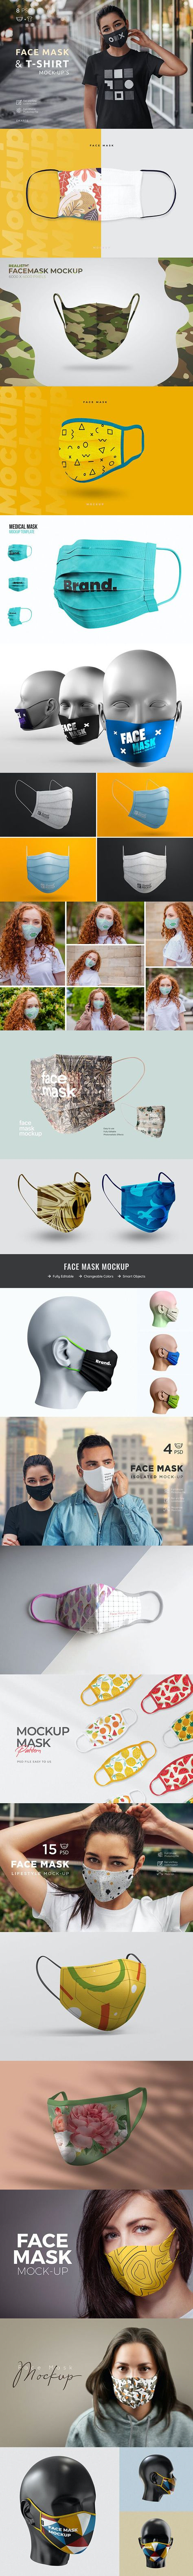 20 Helpful PSD Face Mockup Templates